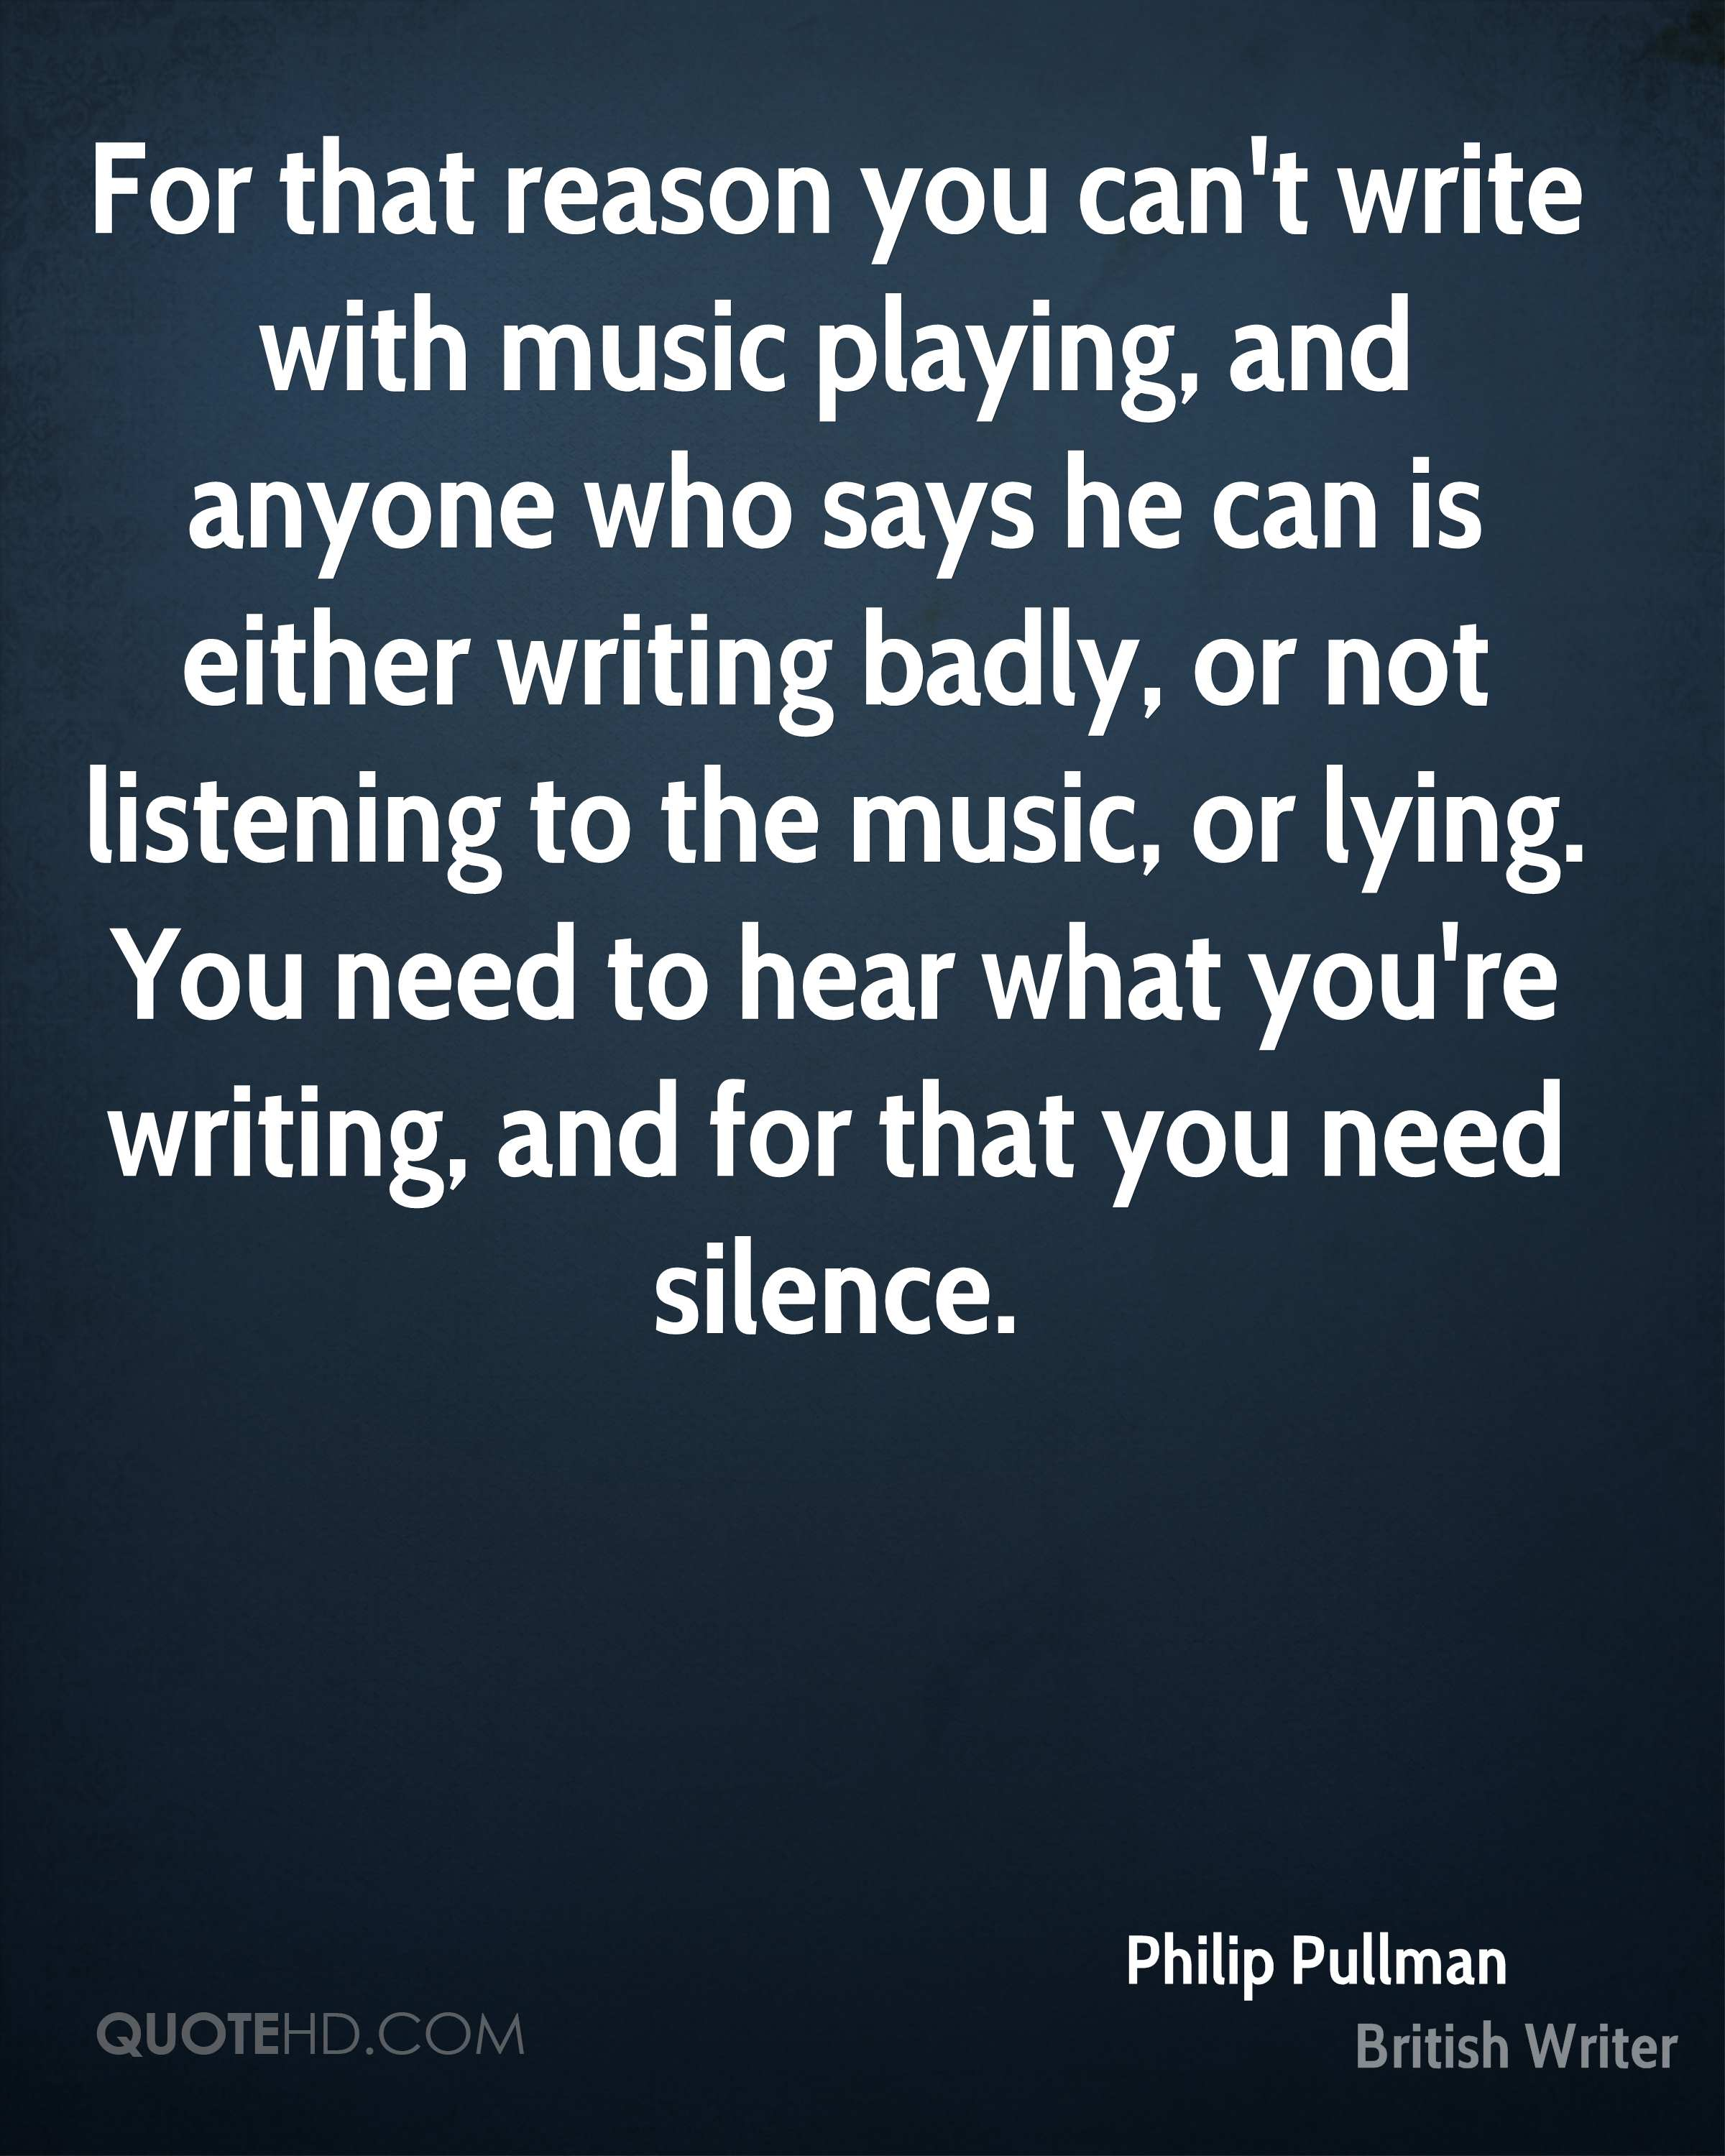 For that reason you can't write with music playing, and anyone who says he can is either writing badly, or not listening to the music, or lying. You need to hear what you're writing, and for that you need silence.